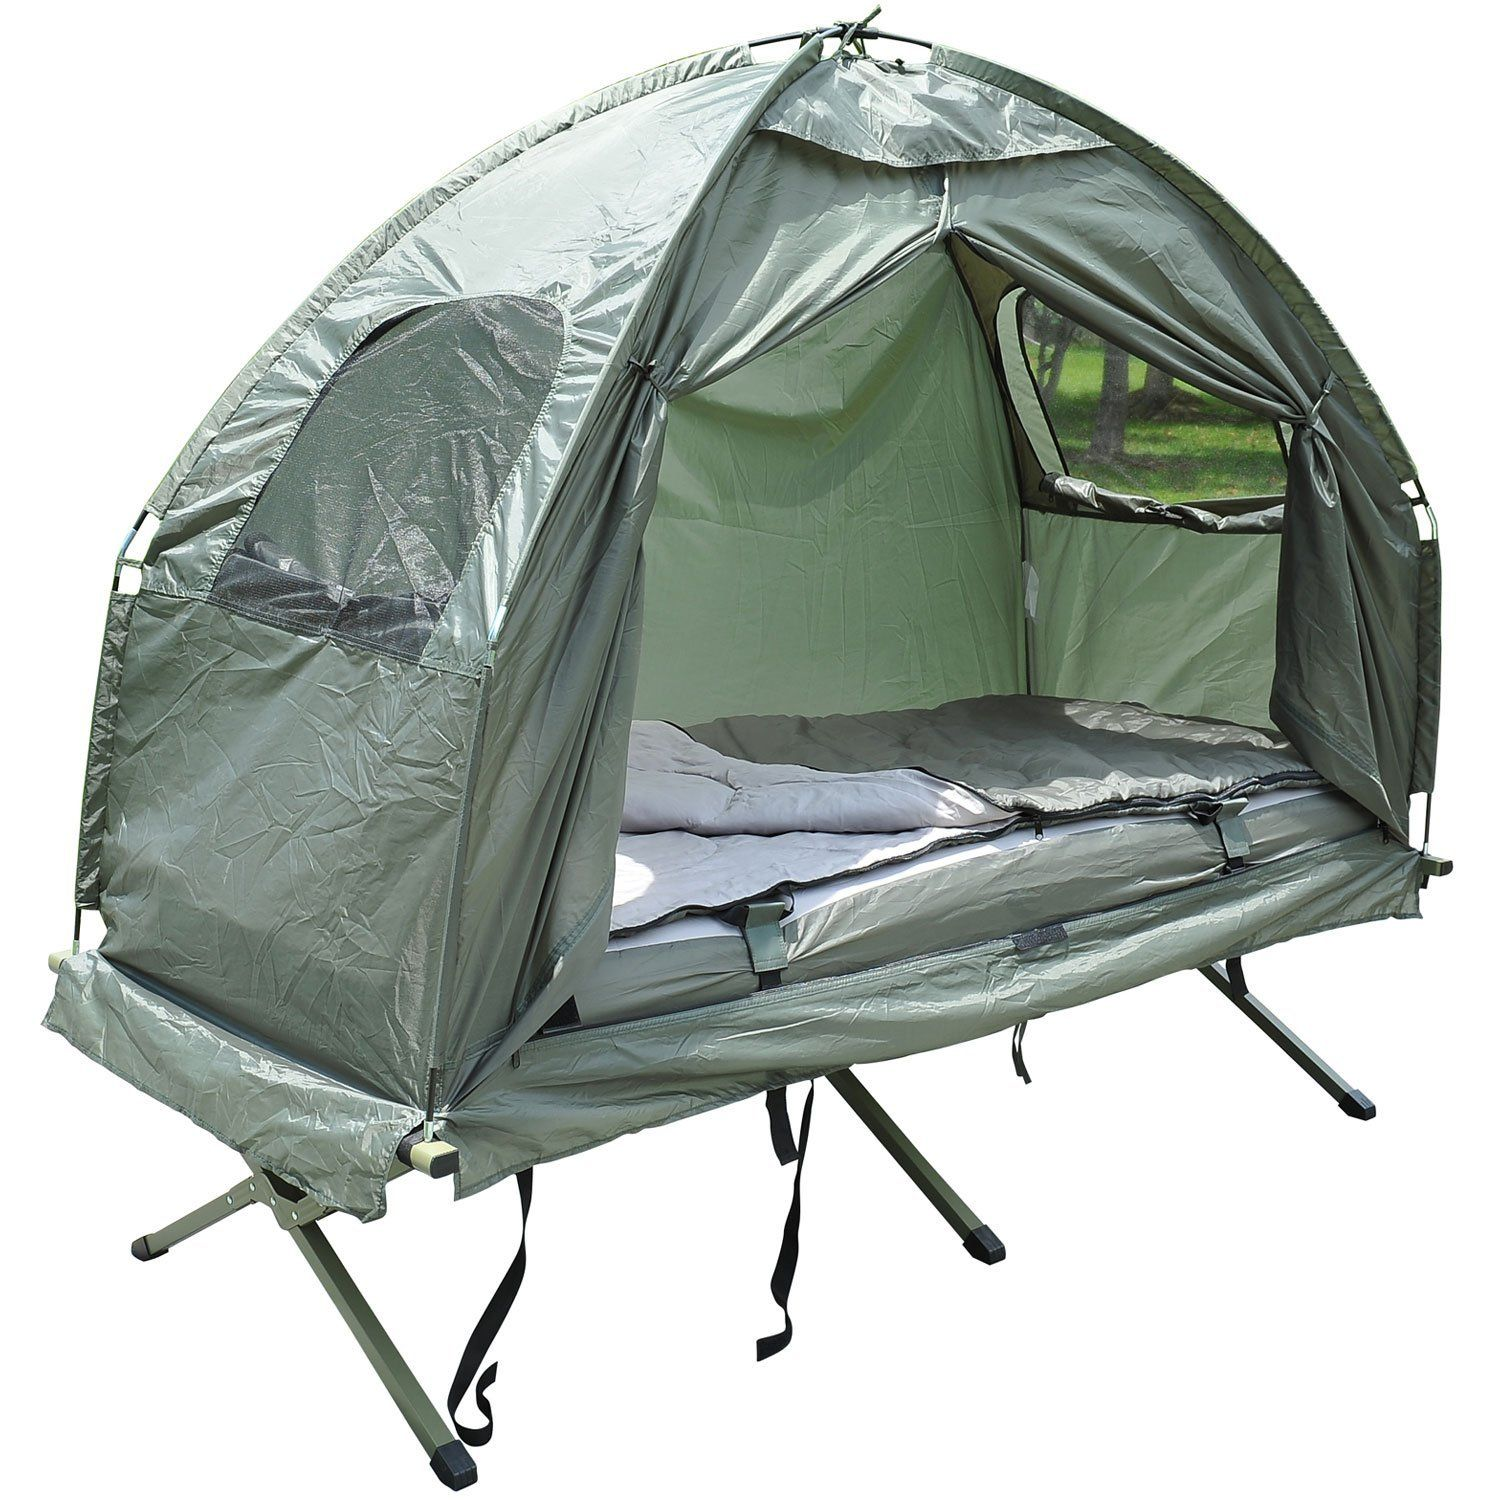 Outsunny Compact Portable Pop Up Tent Camping Cot With Air Mattress And Sleeping Bag